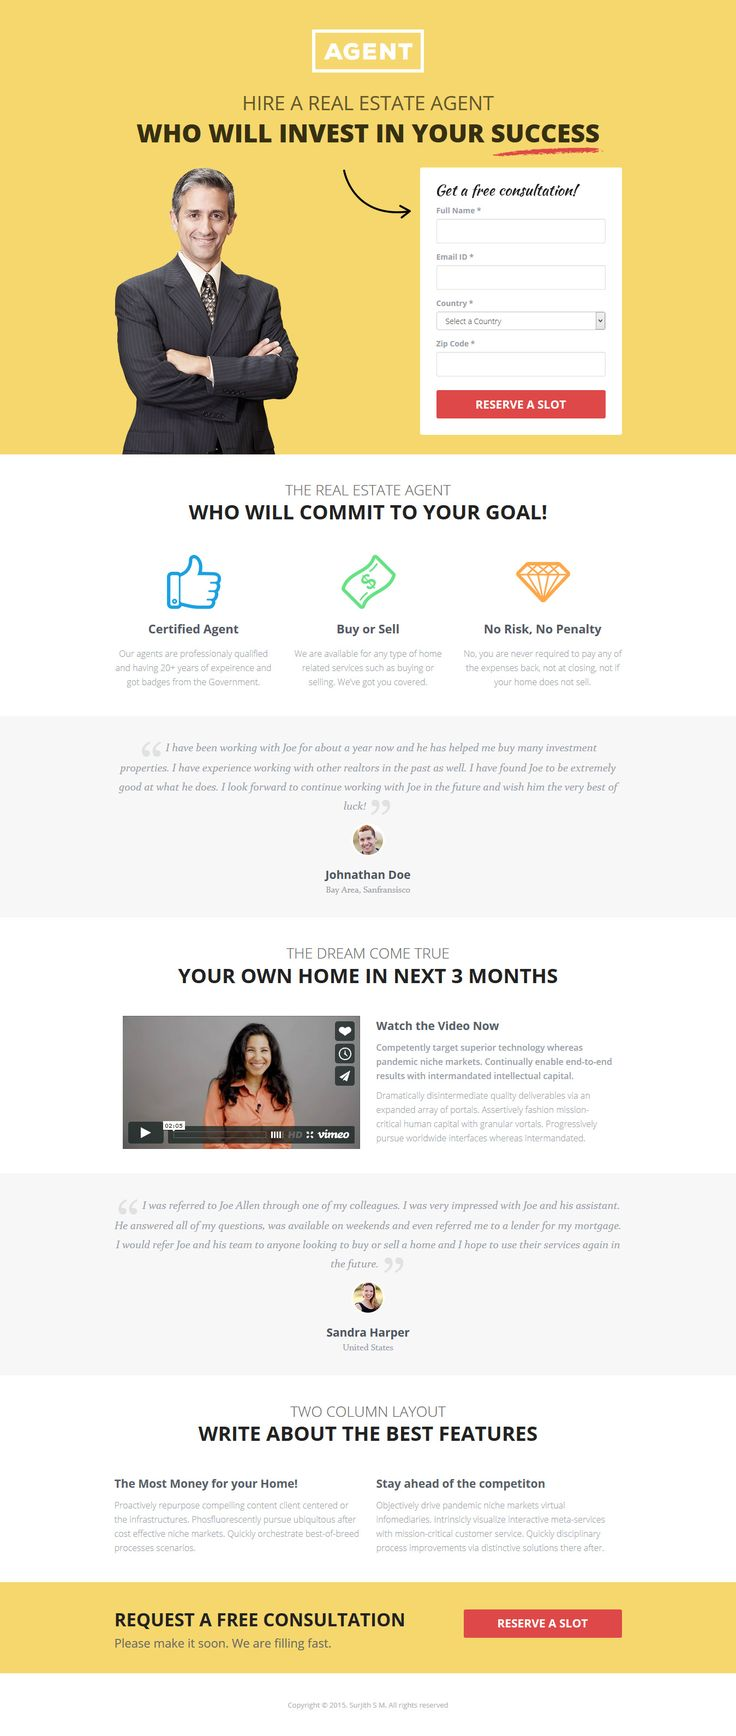 Multipurpose Landing Page Template #website #webdesign Live Preview & Download: http://themeforest.net/item/multipurpose-landing-page-template-agents/12219638?ref=ksioks